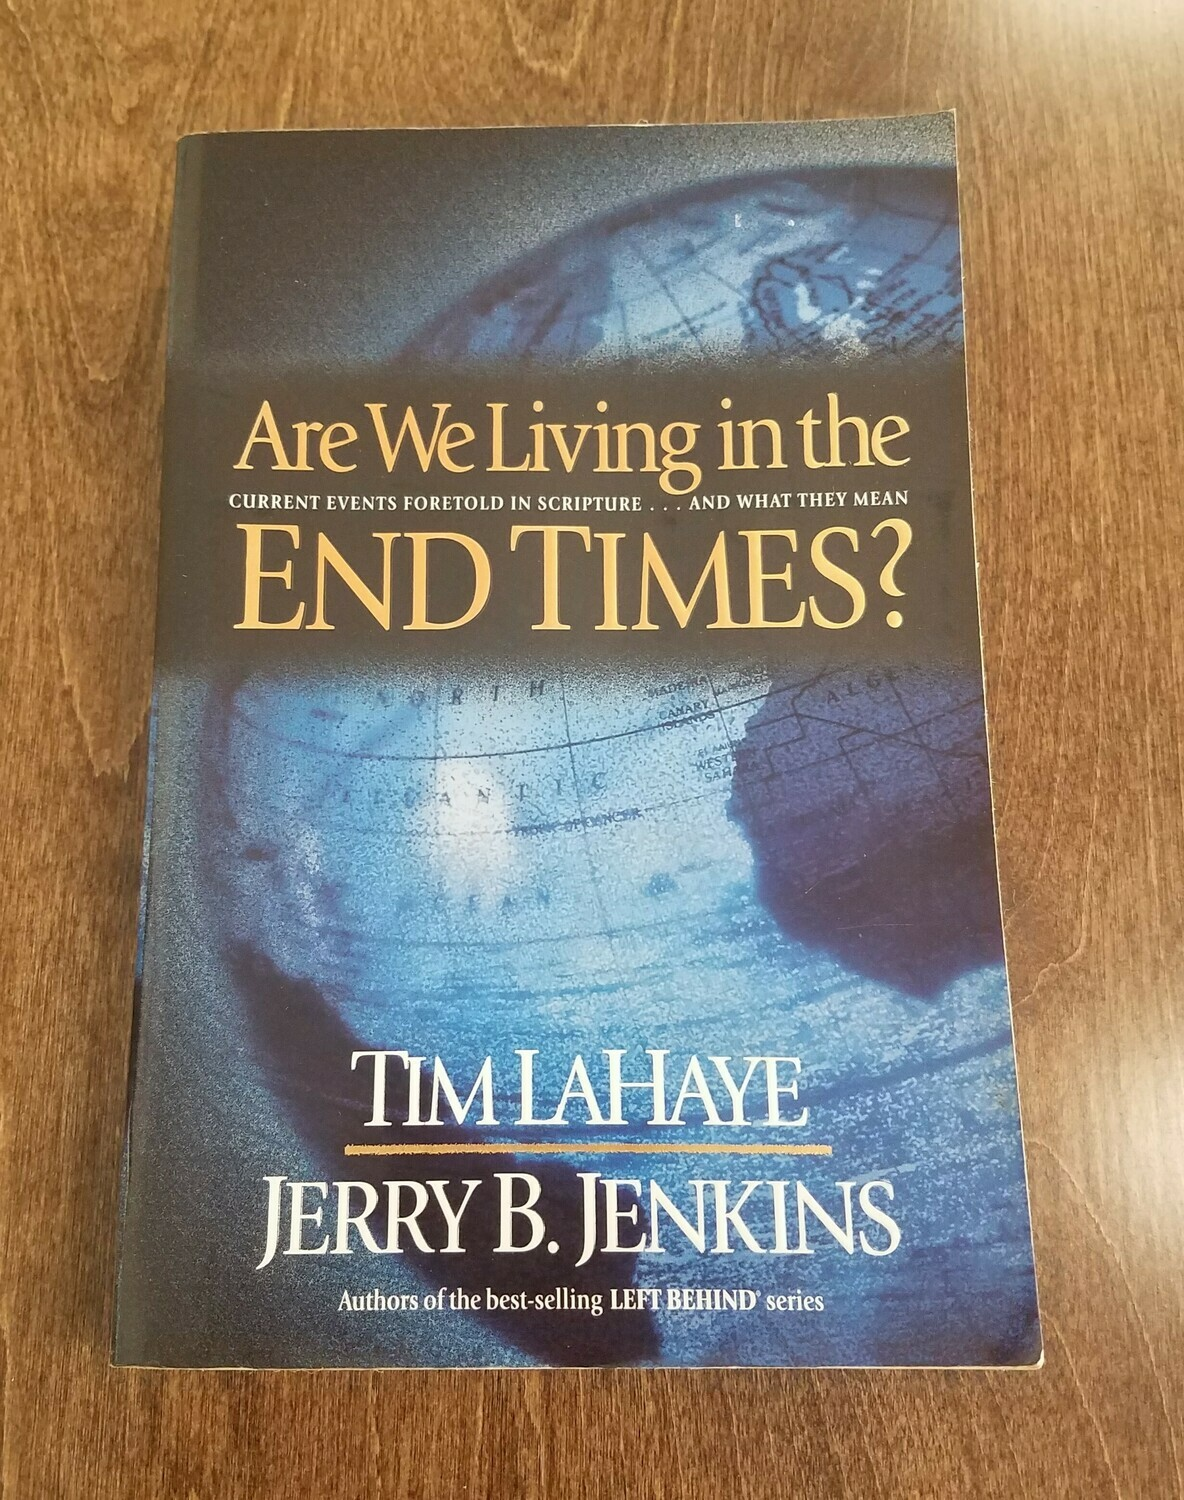 Are We Living in the End Times? by Tim LaHaye and Jerry B. Jenkins - Paperback